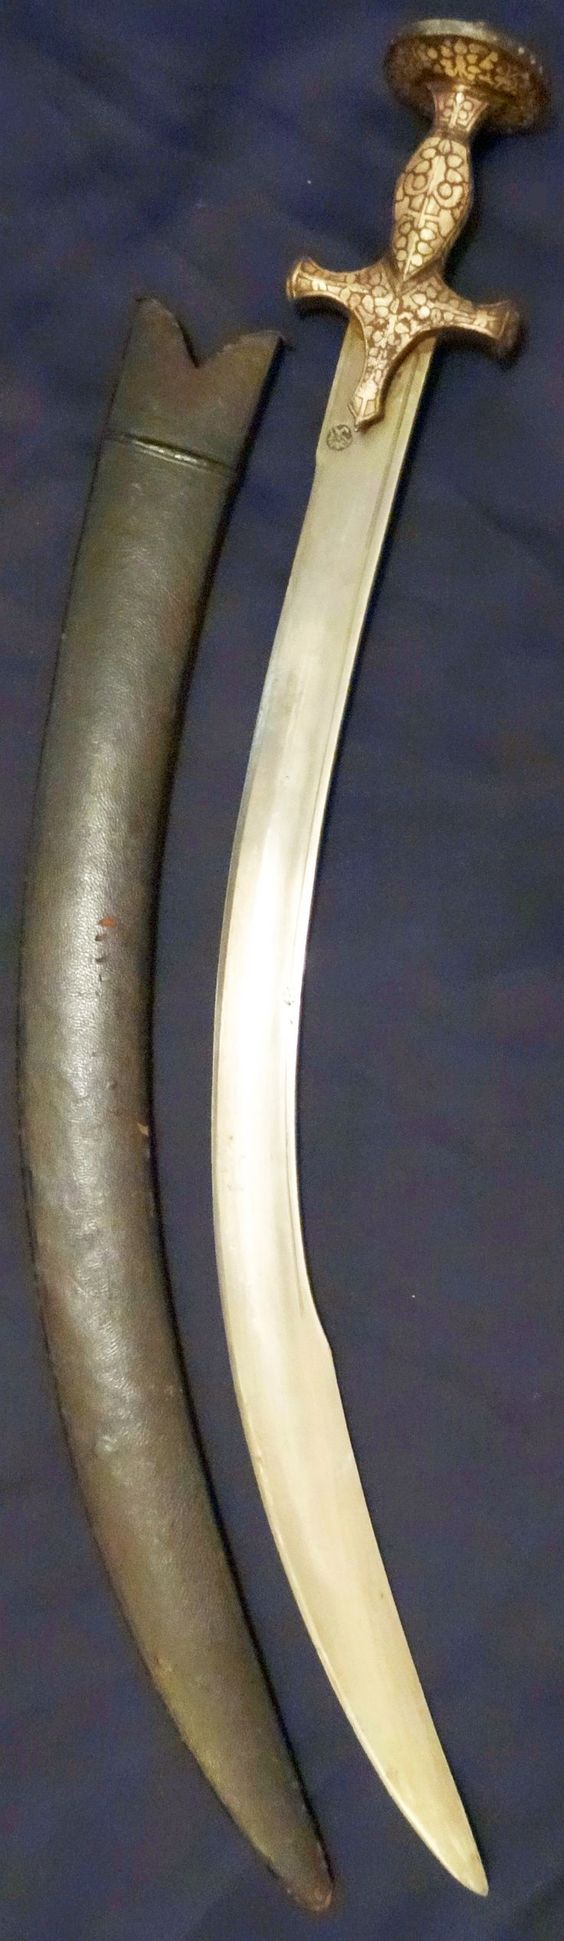 Tegha/pala style short sword from India. Probably mid 19 C. Deeply curved.